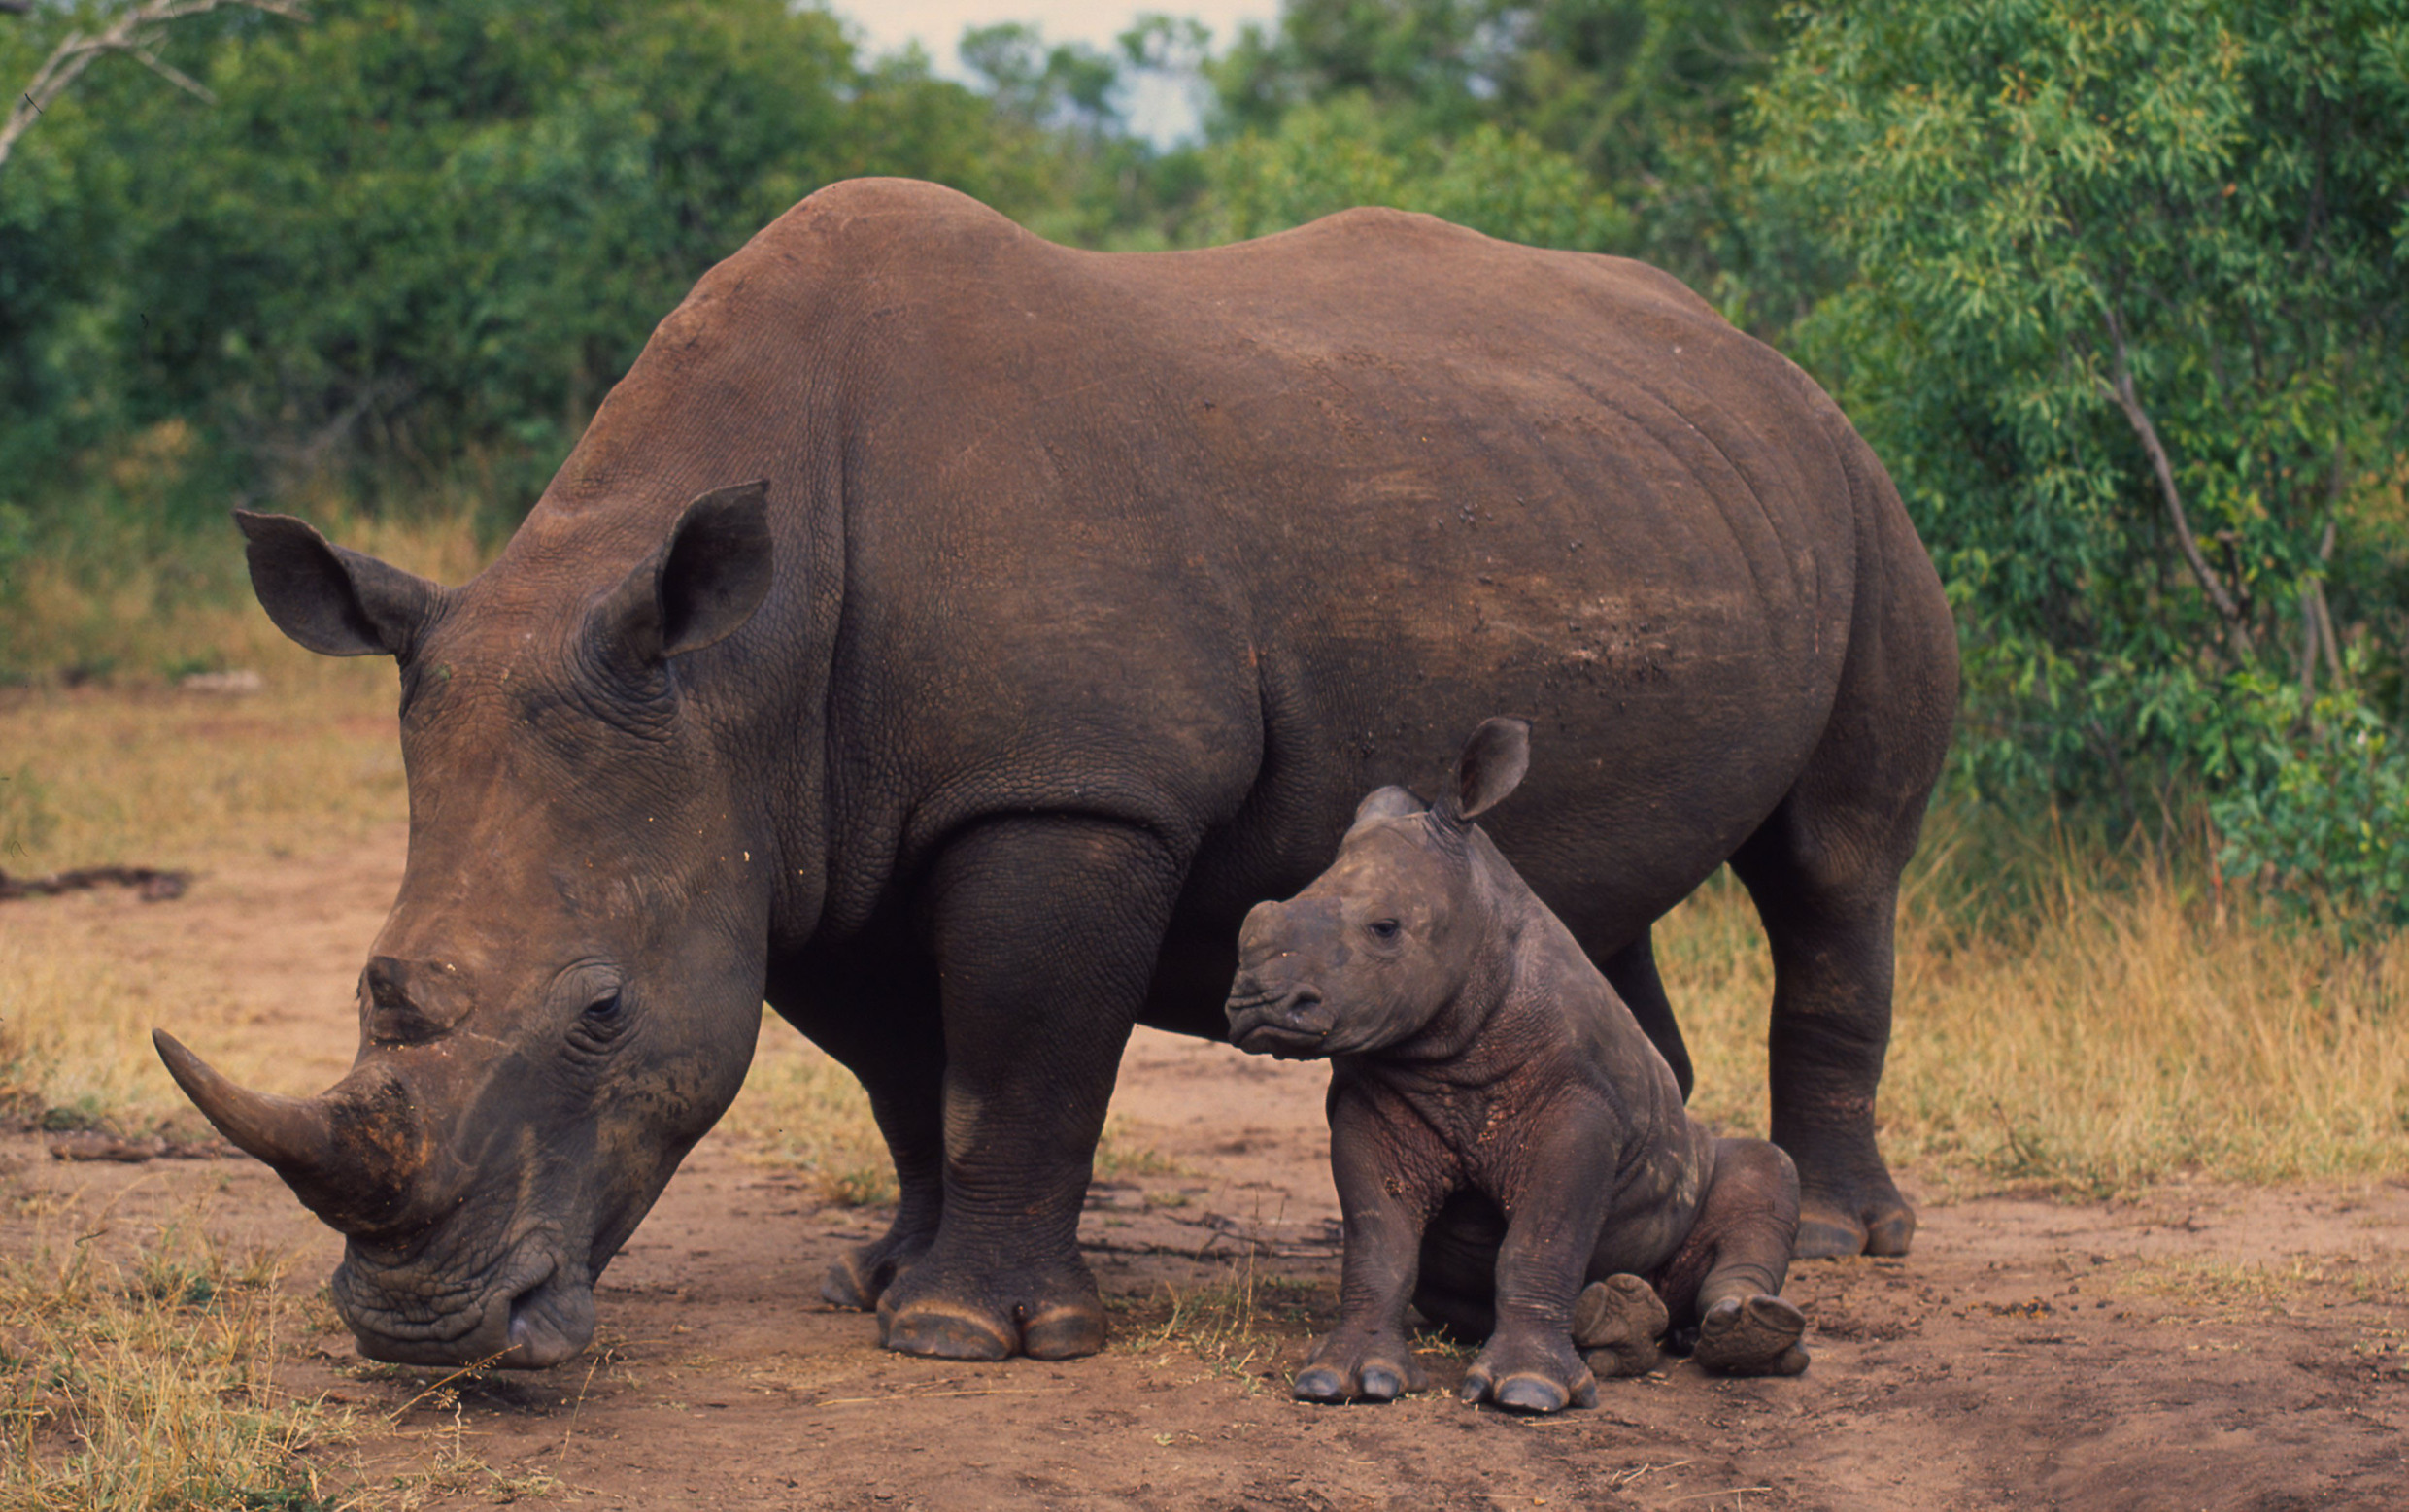 WWF to move critically endangered rhinos to new habitats ...